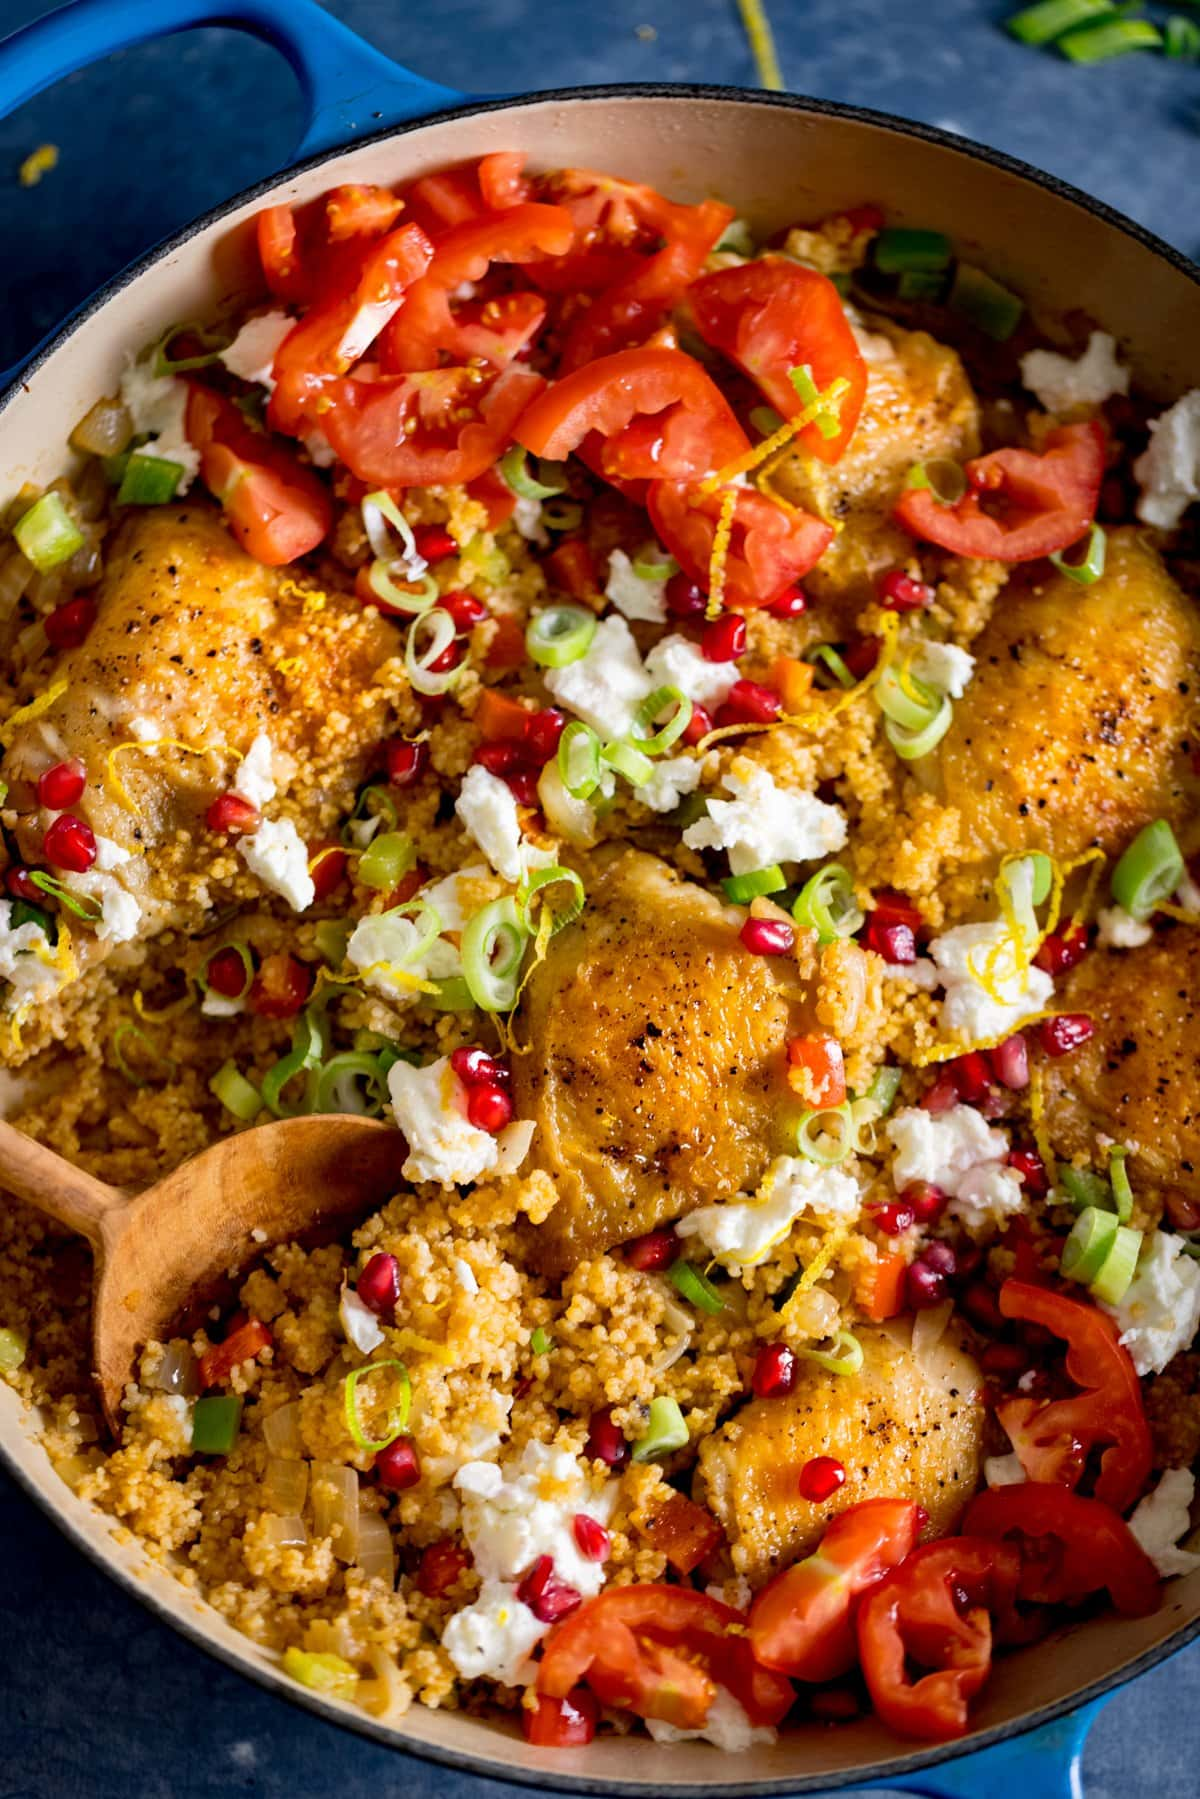 Chicken and couscous one pot in a pan on a blue table. There is a spoonful being taken from the pan. The dish is topped with feta, pomegranate and chopped tomatoes.